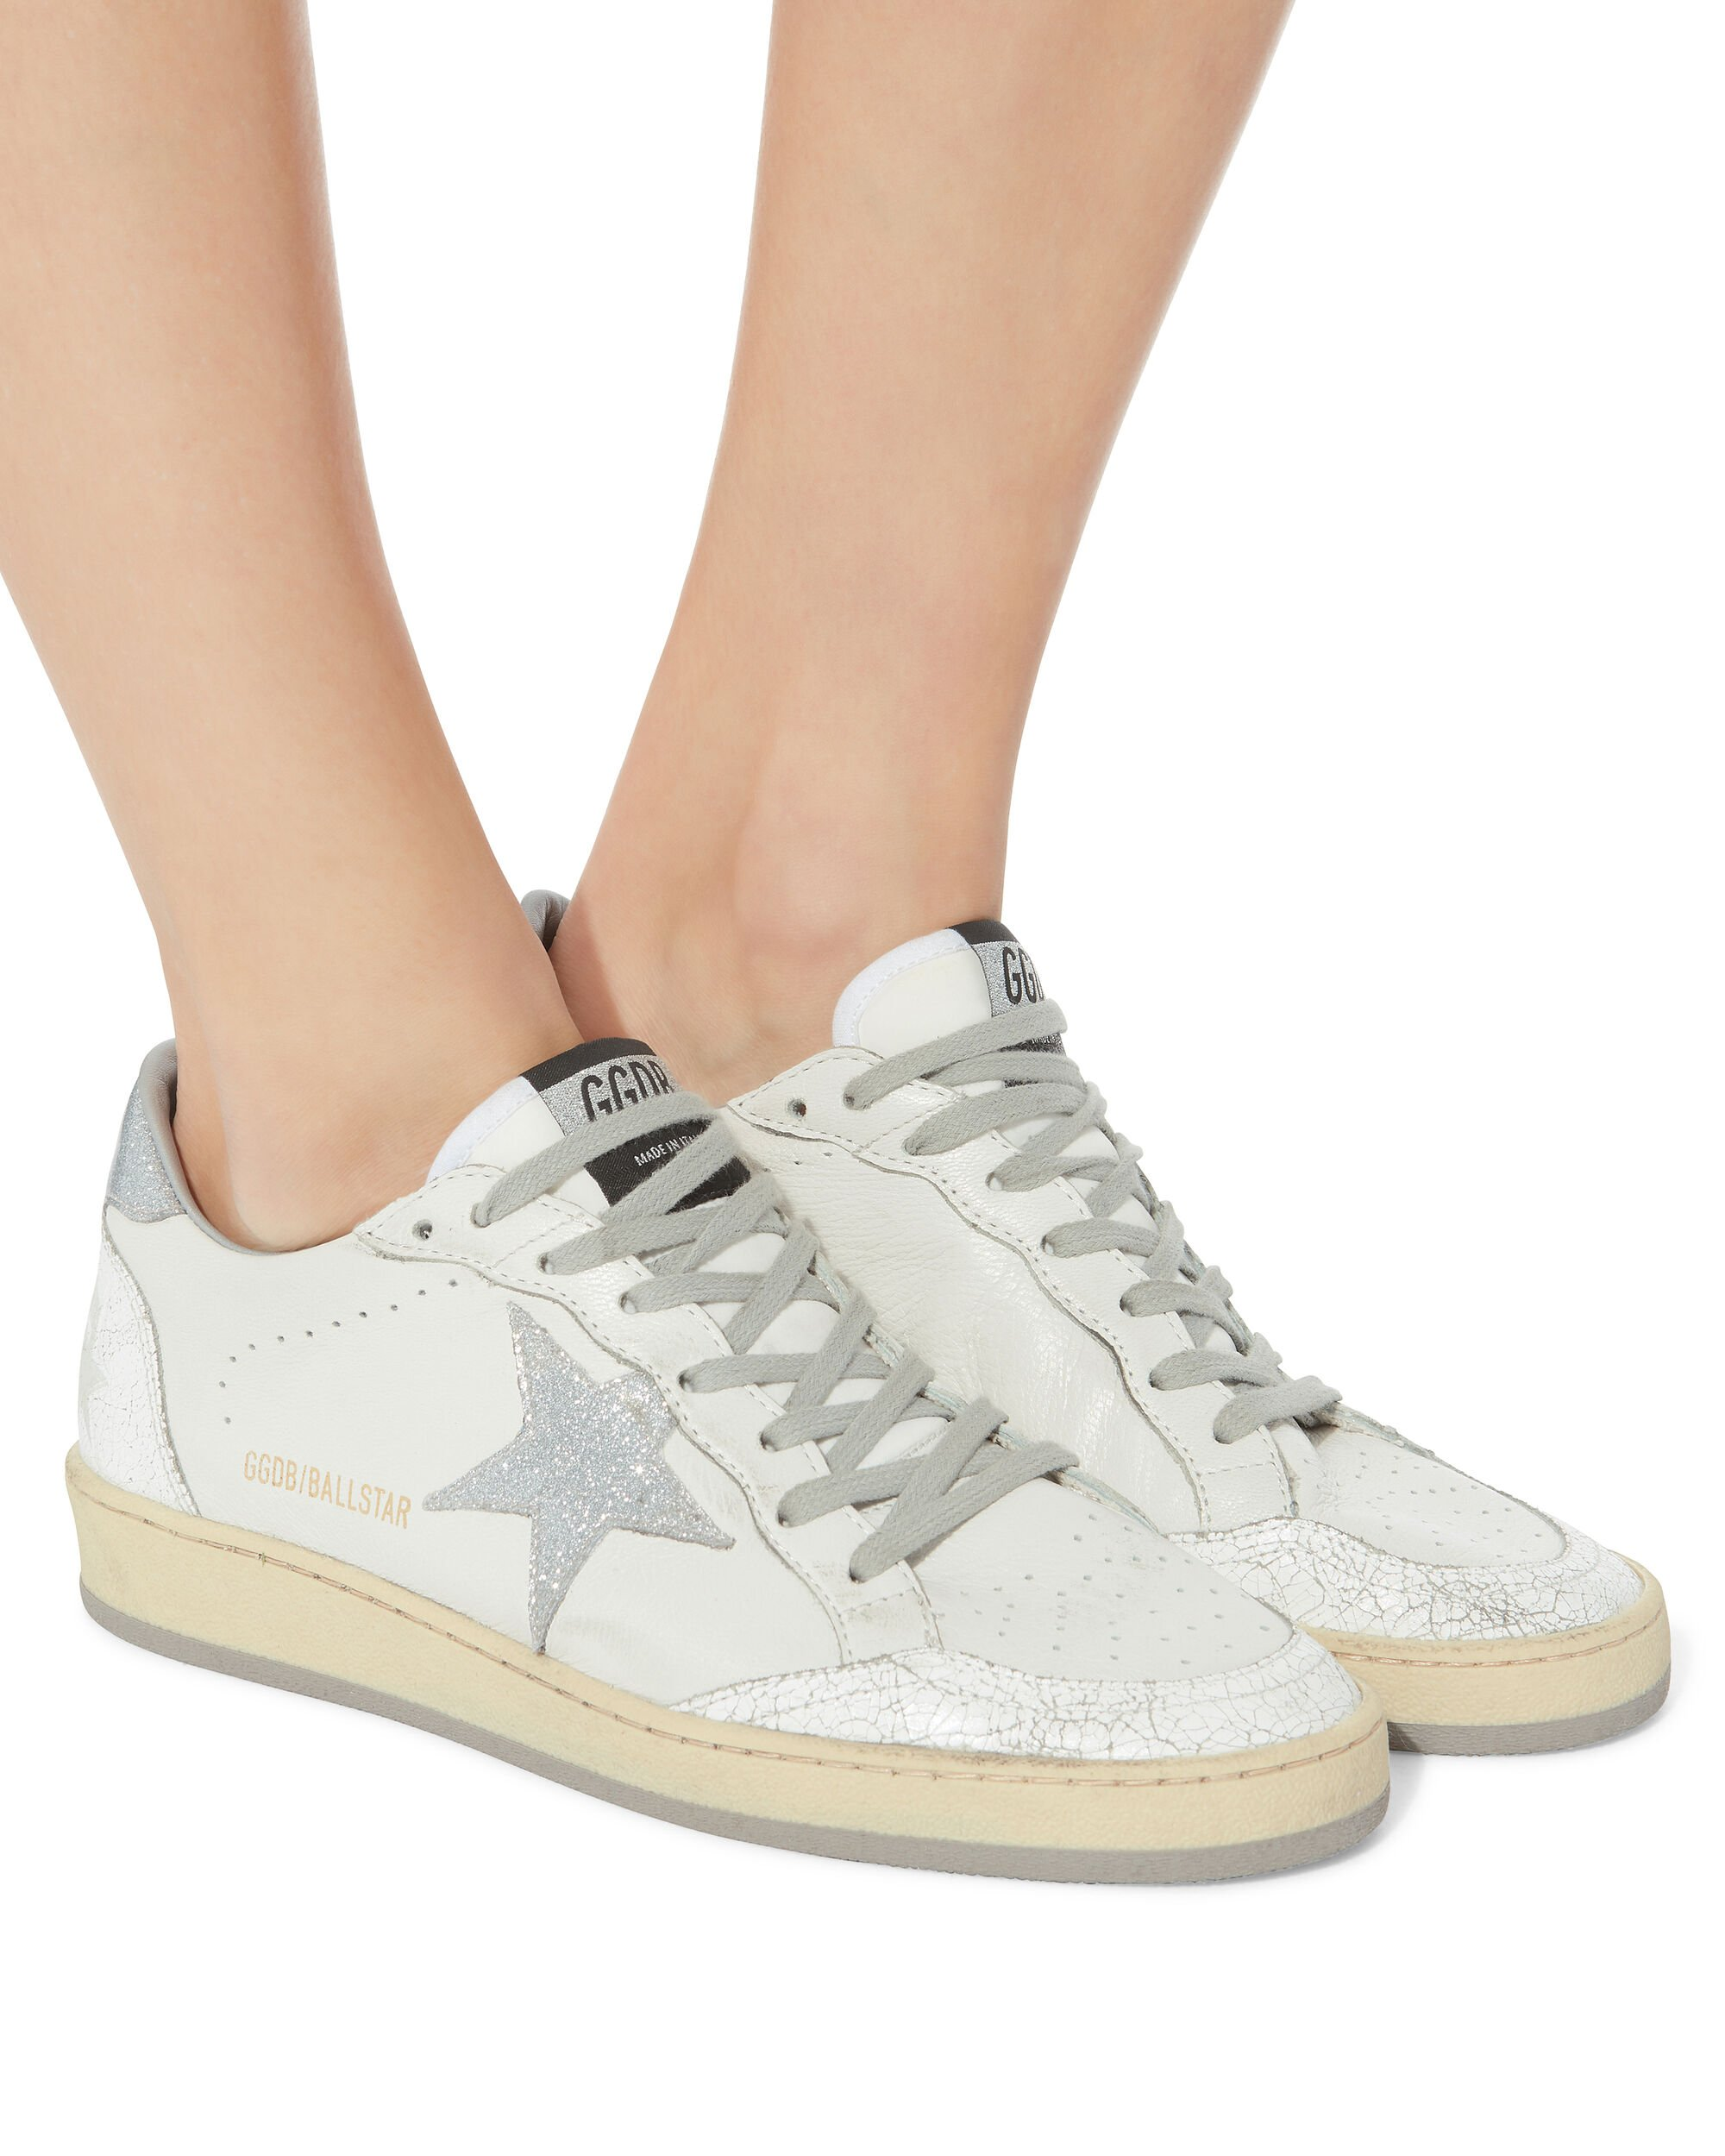 Ball Star Silver Star Low-Top Sneakers, WHITE, hi-res